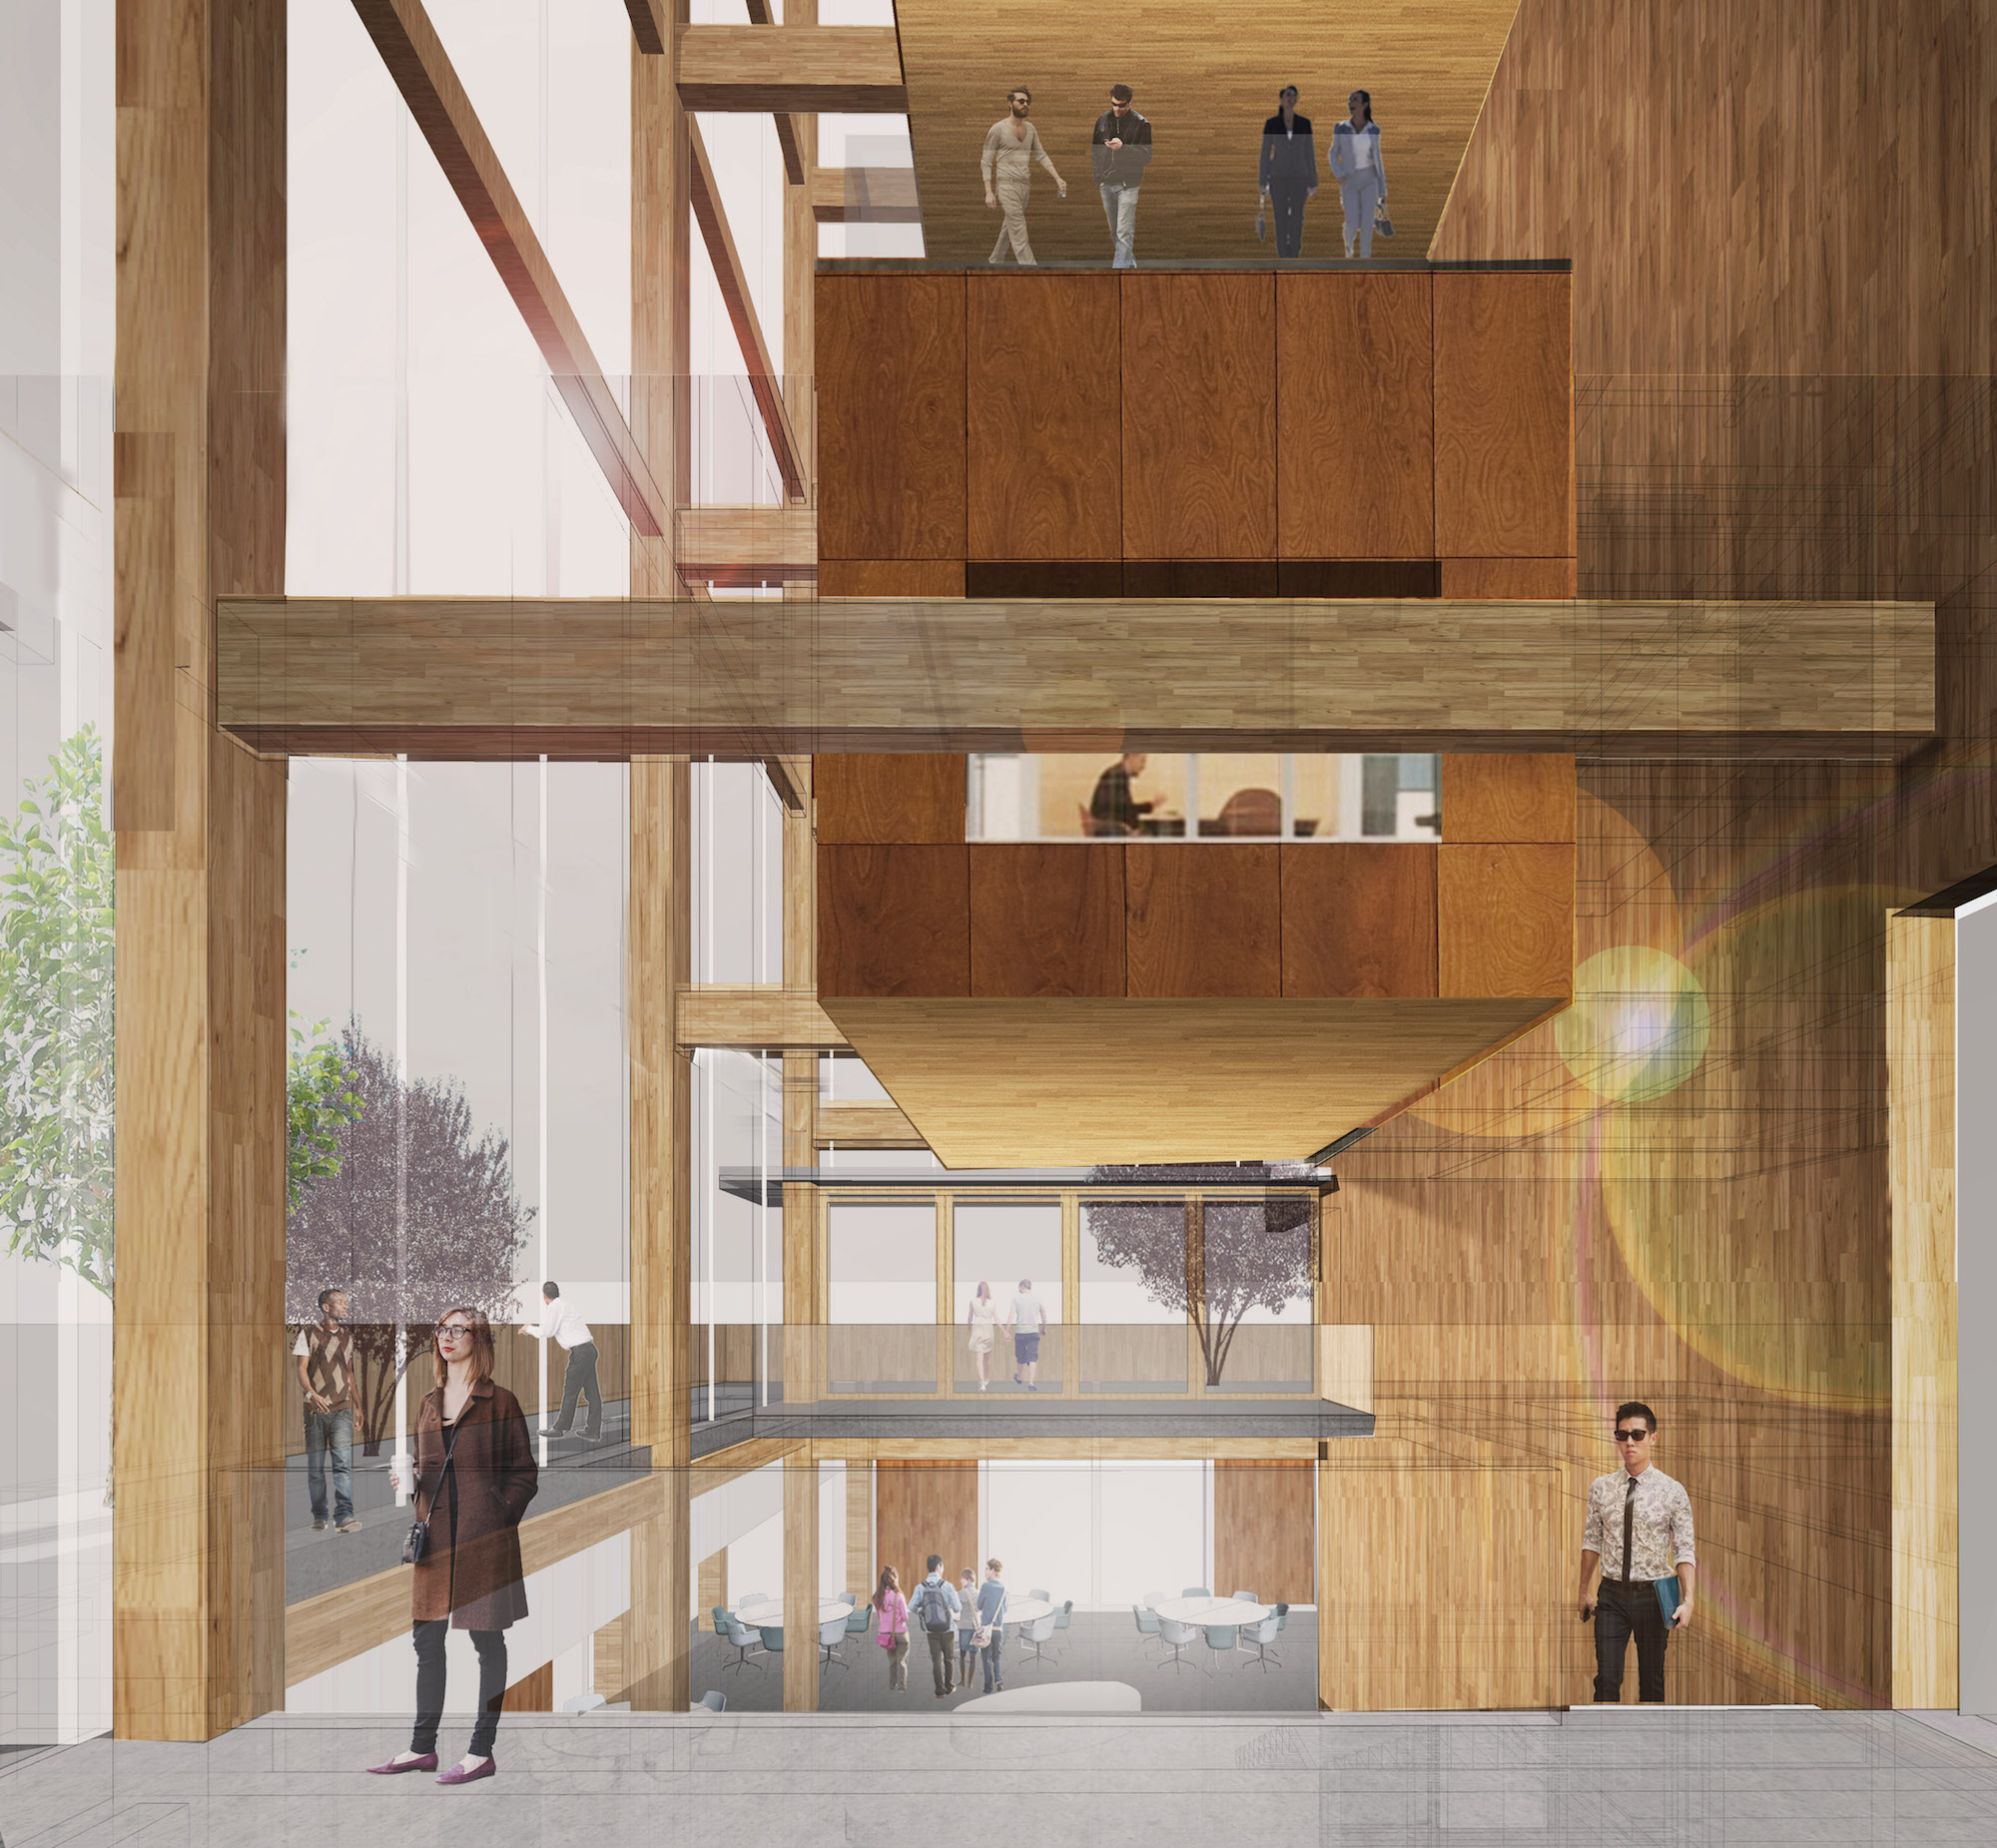 UW Center for Wood Innovation, rendering by Vy Nguyen